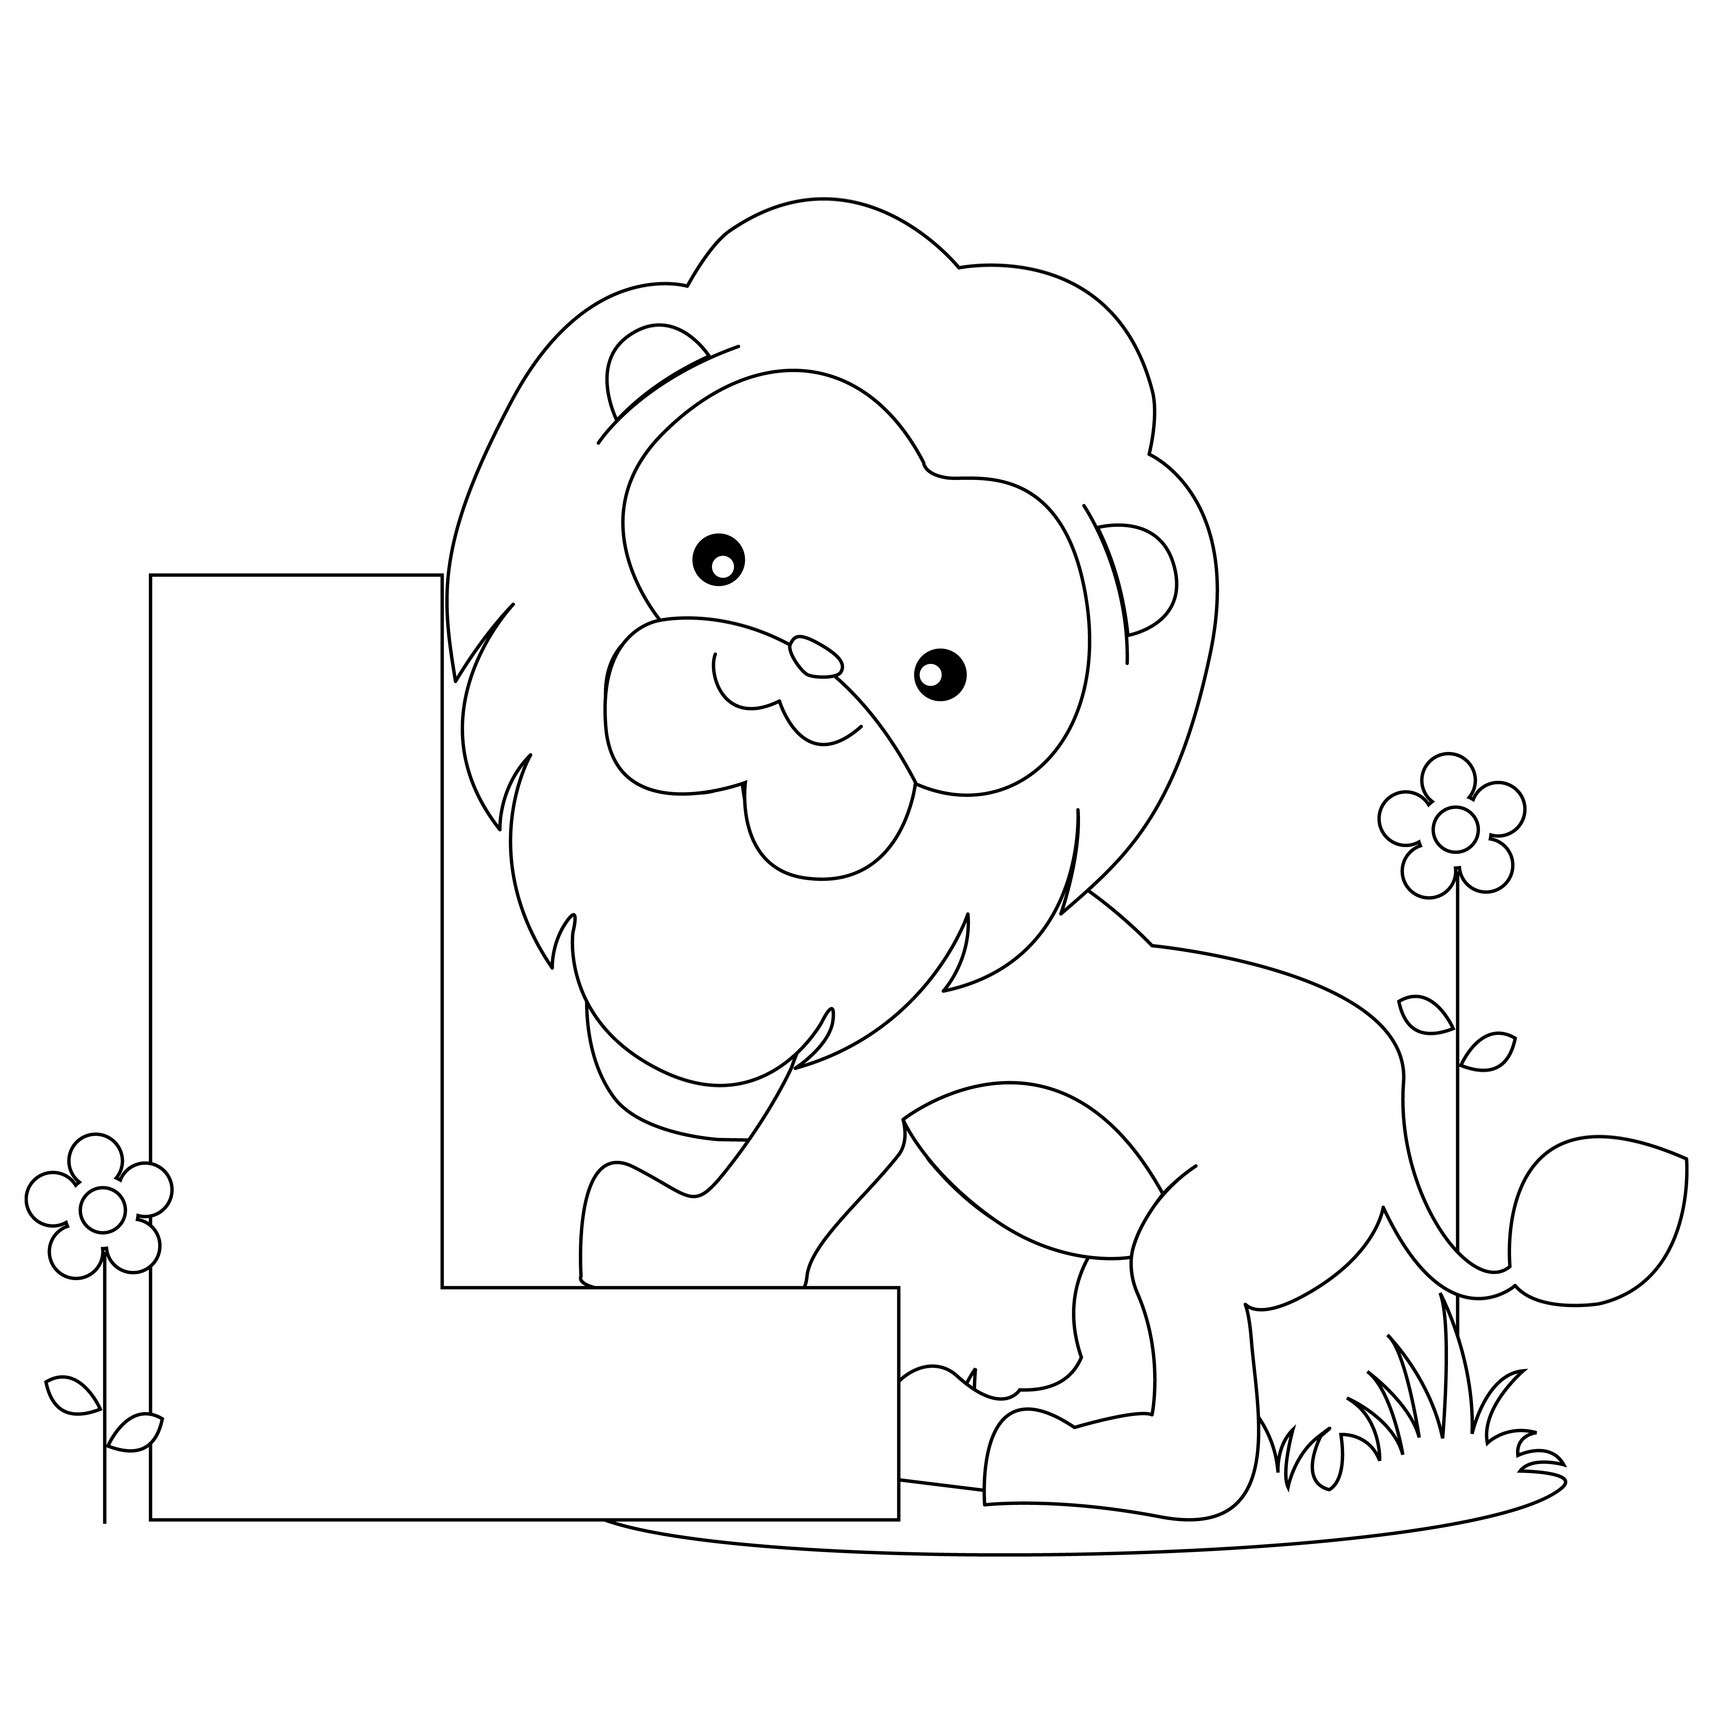 letter a coloring page animal alphabet letter h coloring child coloring letter coloring a page